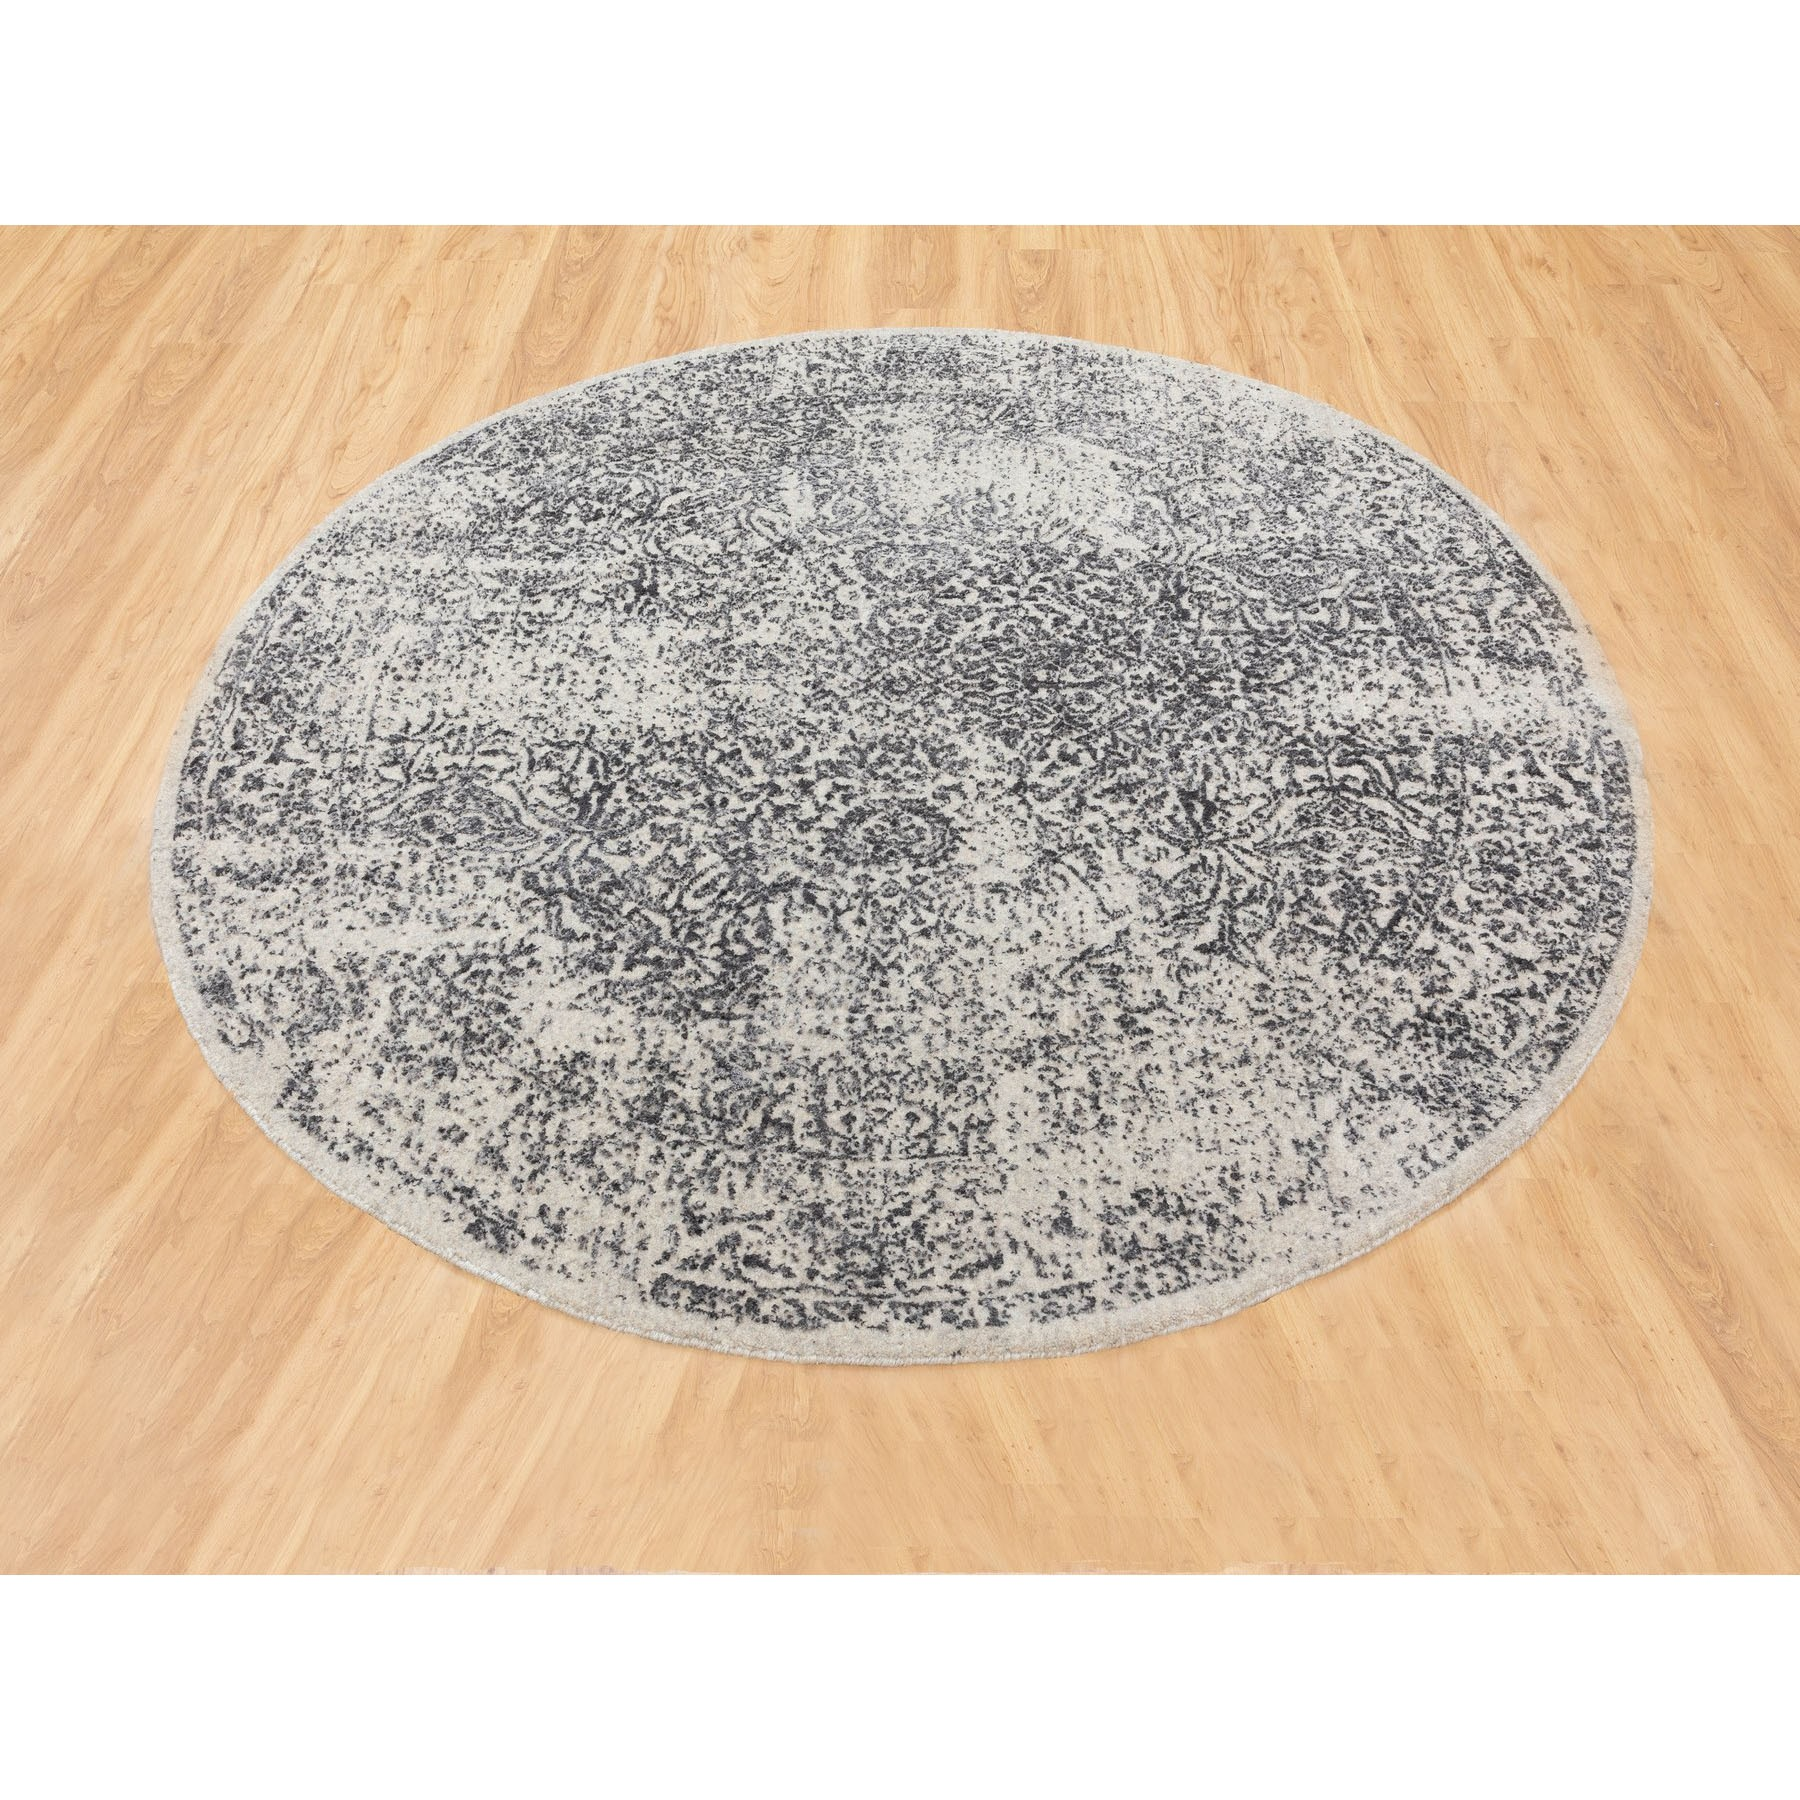 "5'10""x5'10"" Round Fine jacquard Hand Loomed Erased Design Wool And Silk Oriental Rug"